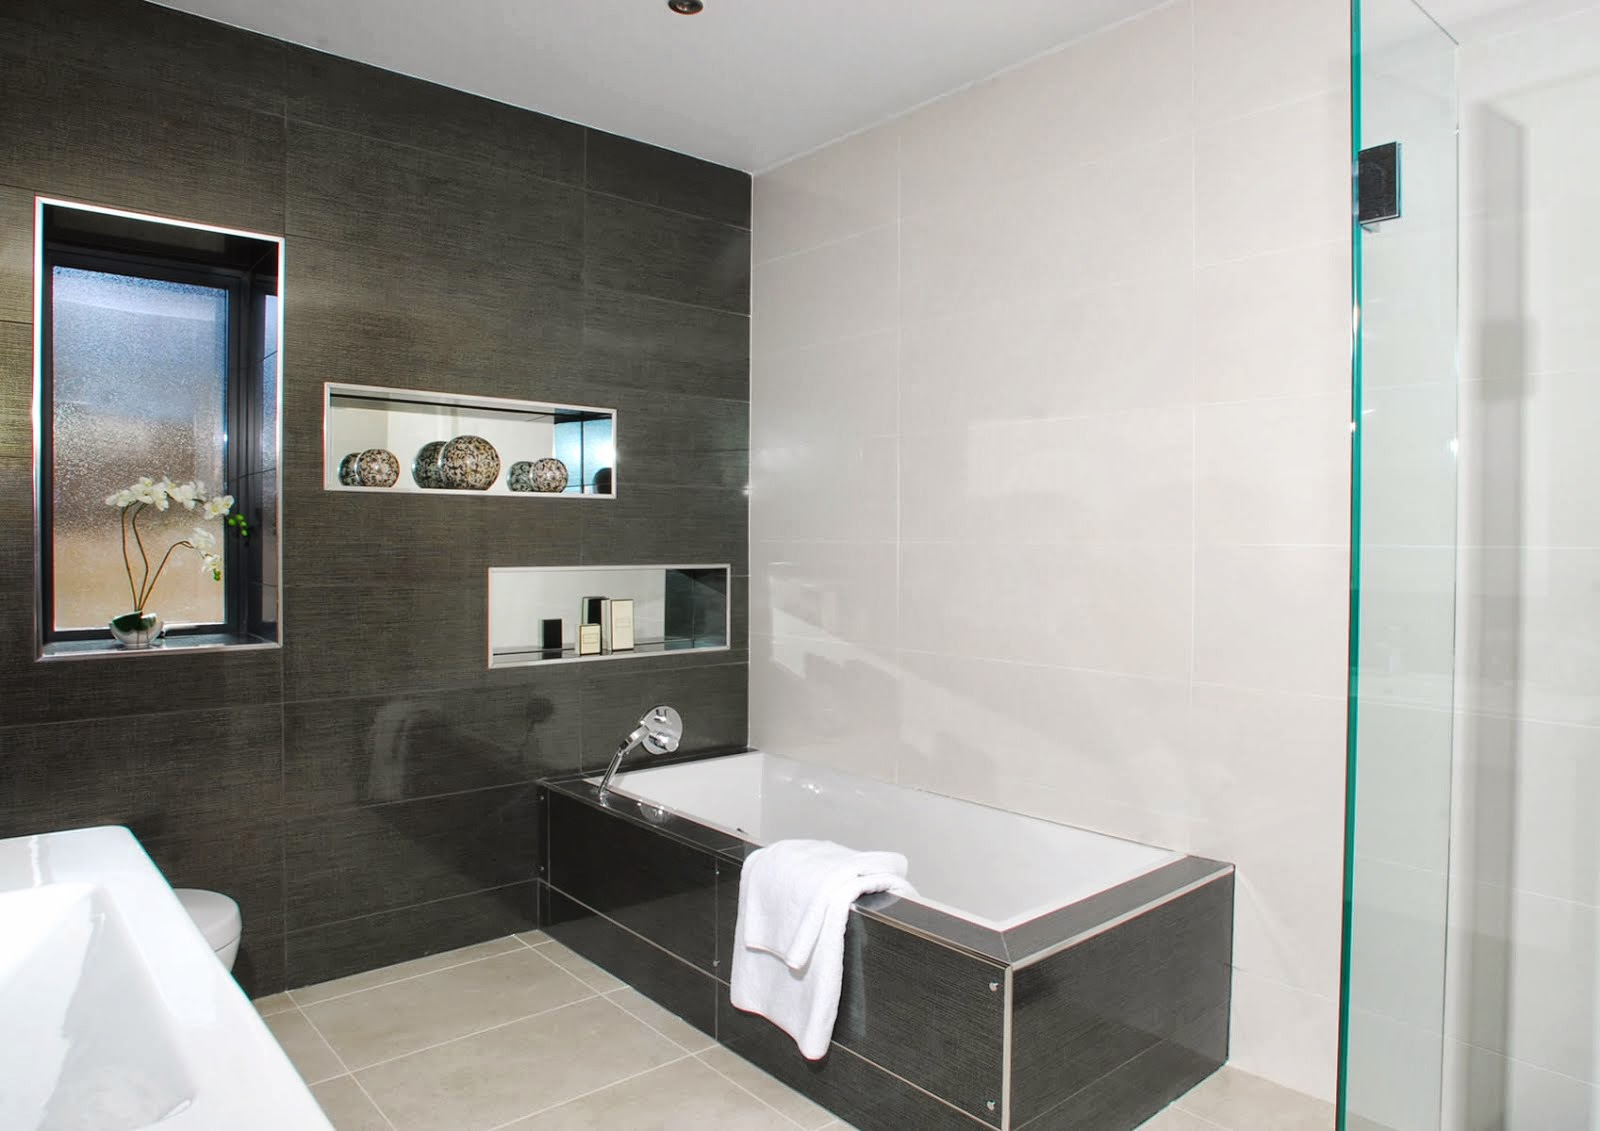 Bathroom design ideas uk for Bathroom ideas layout